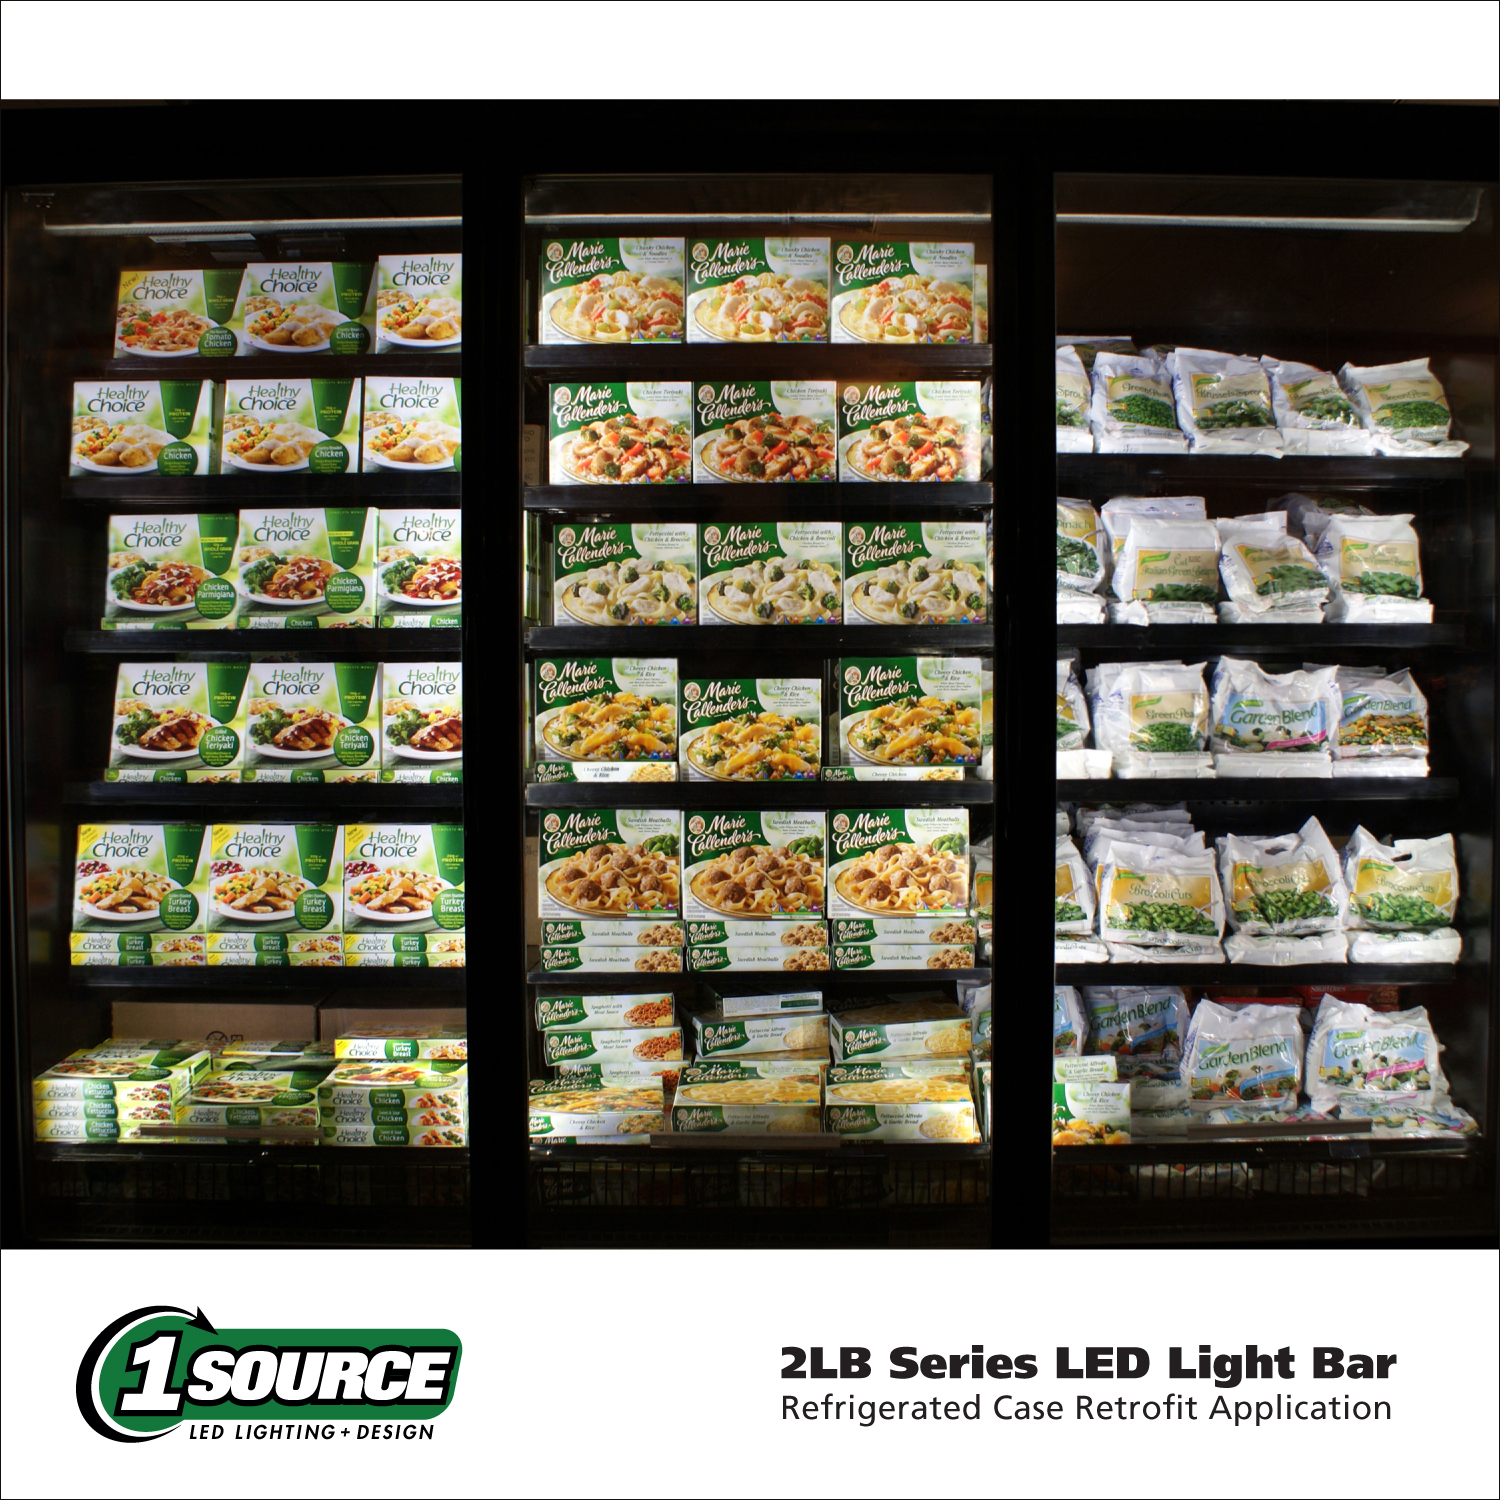 1 Source LED, 2LB Series Light Bar Catalog